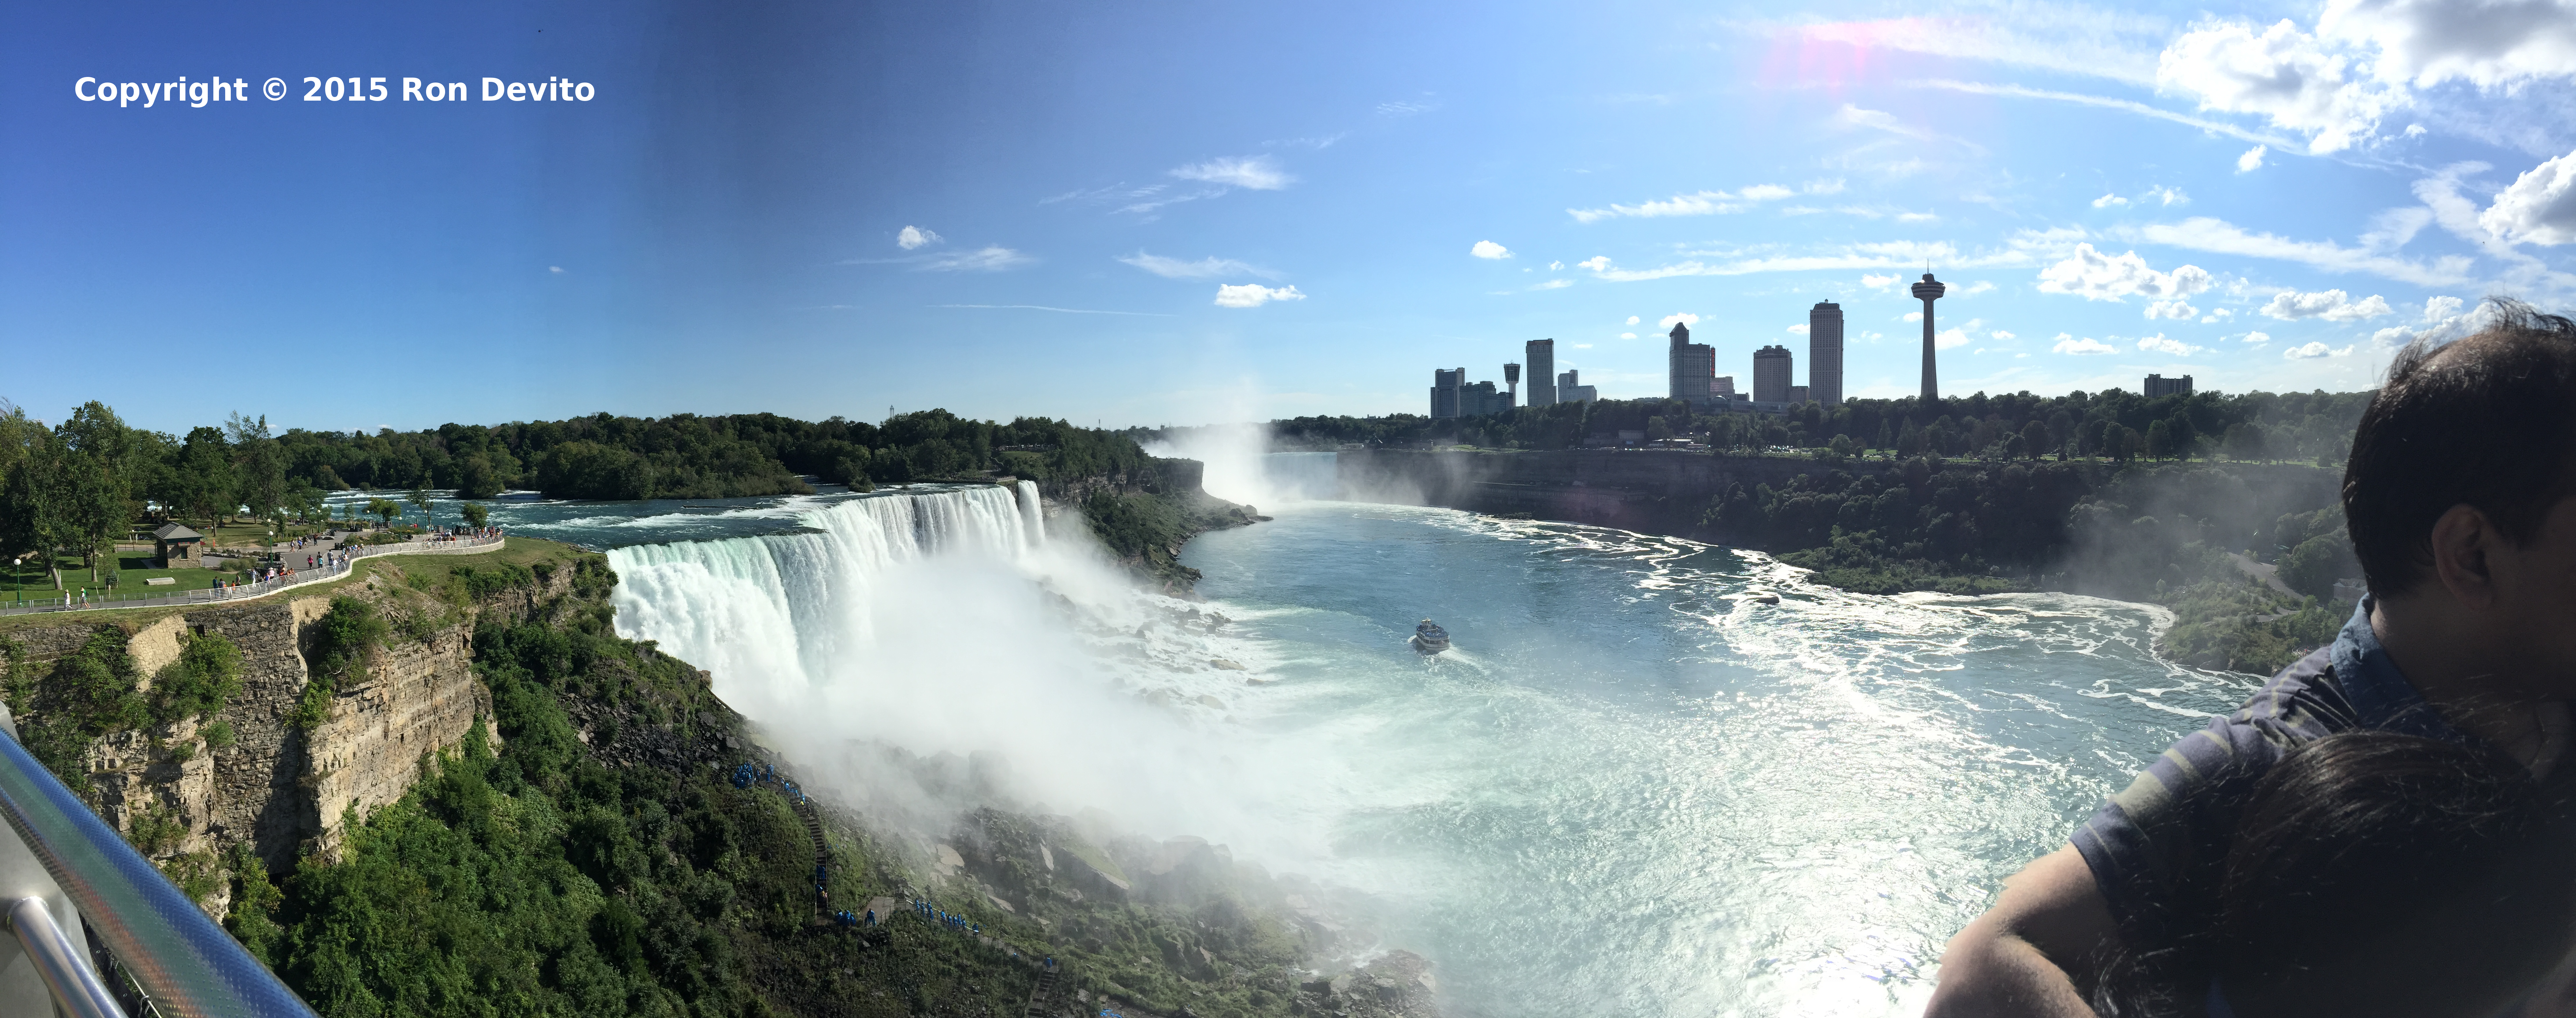 View from Niagara Falls State Park Observation Tower looking toward the American Falls, Horseshoe Falls and Niagara Falls, Ontario skyline.